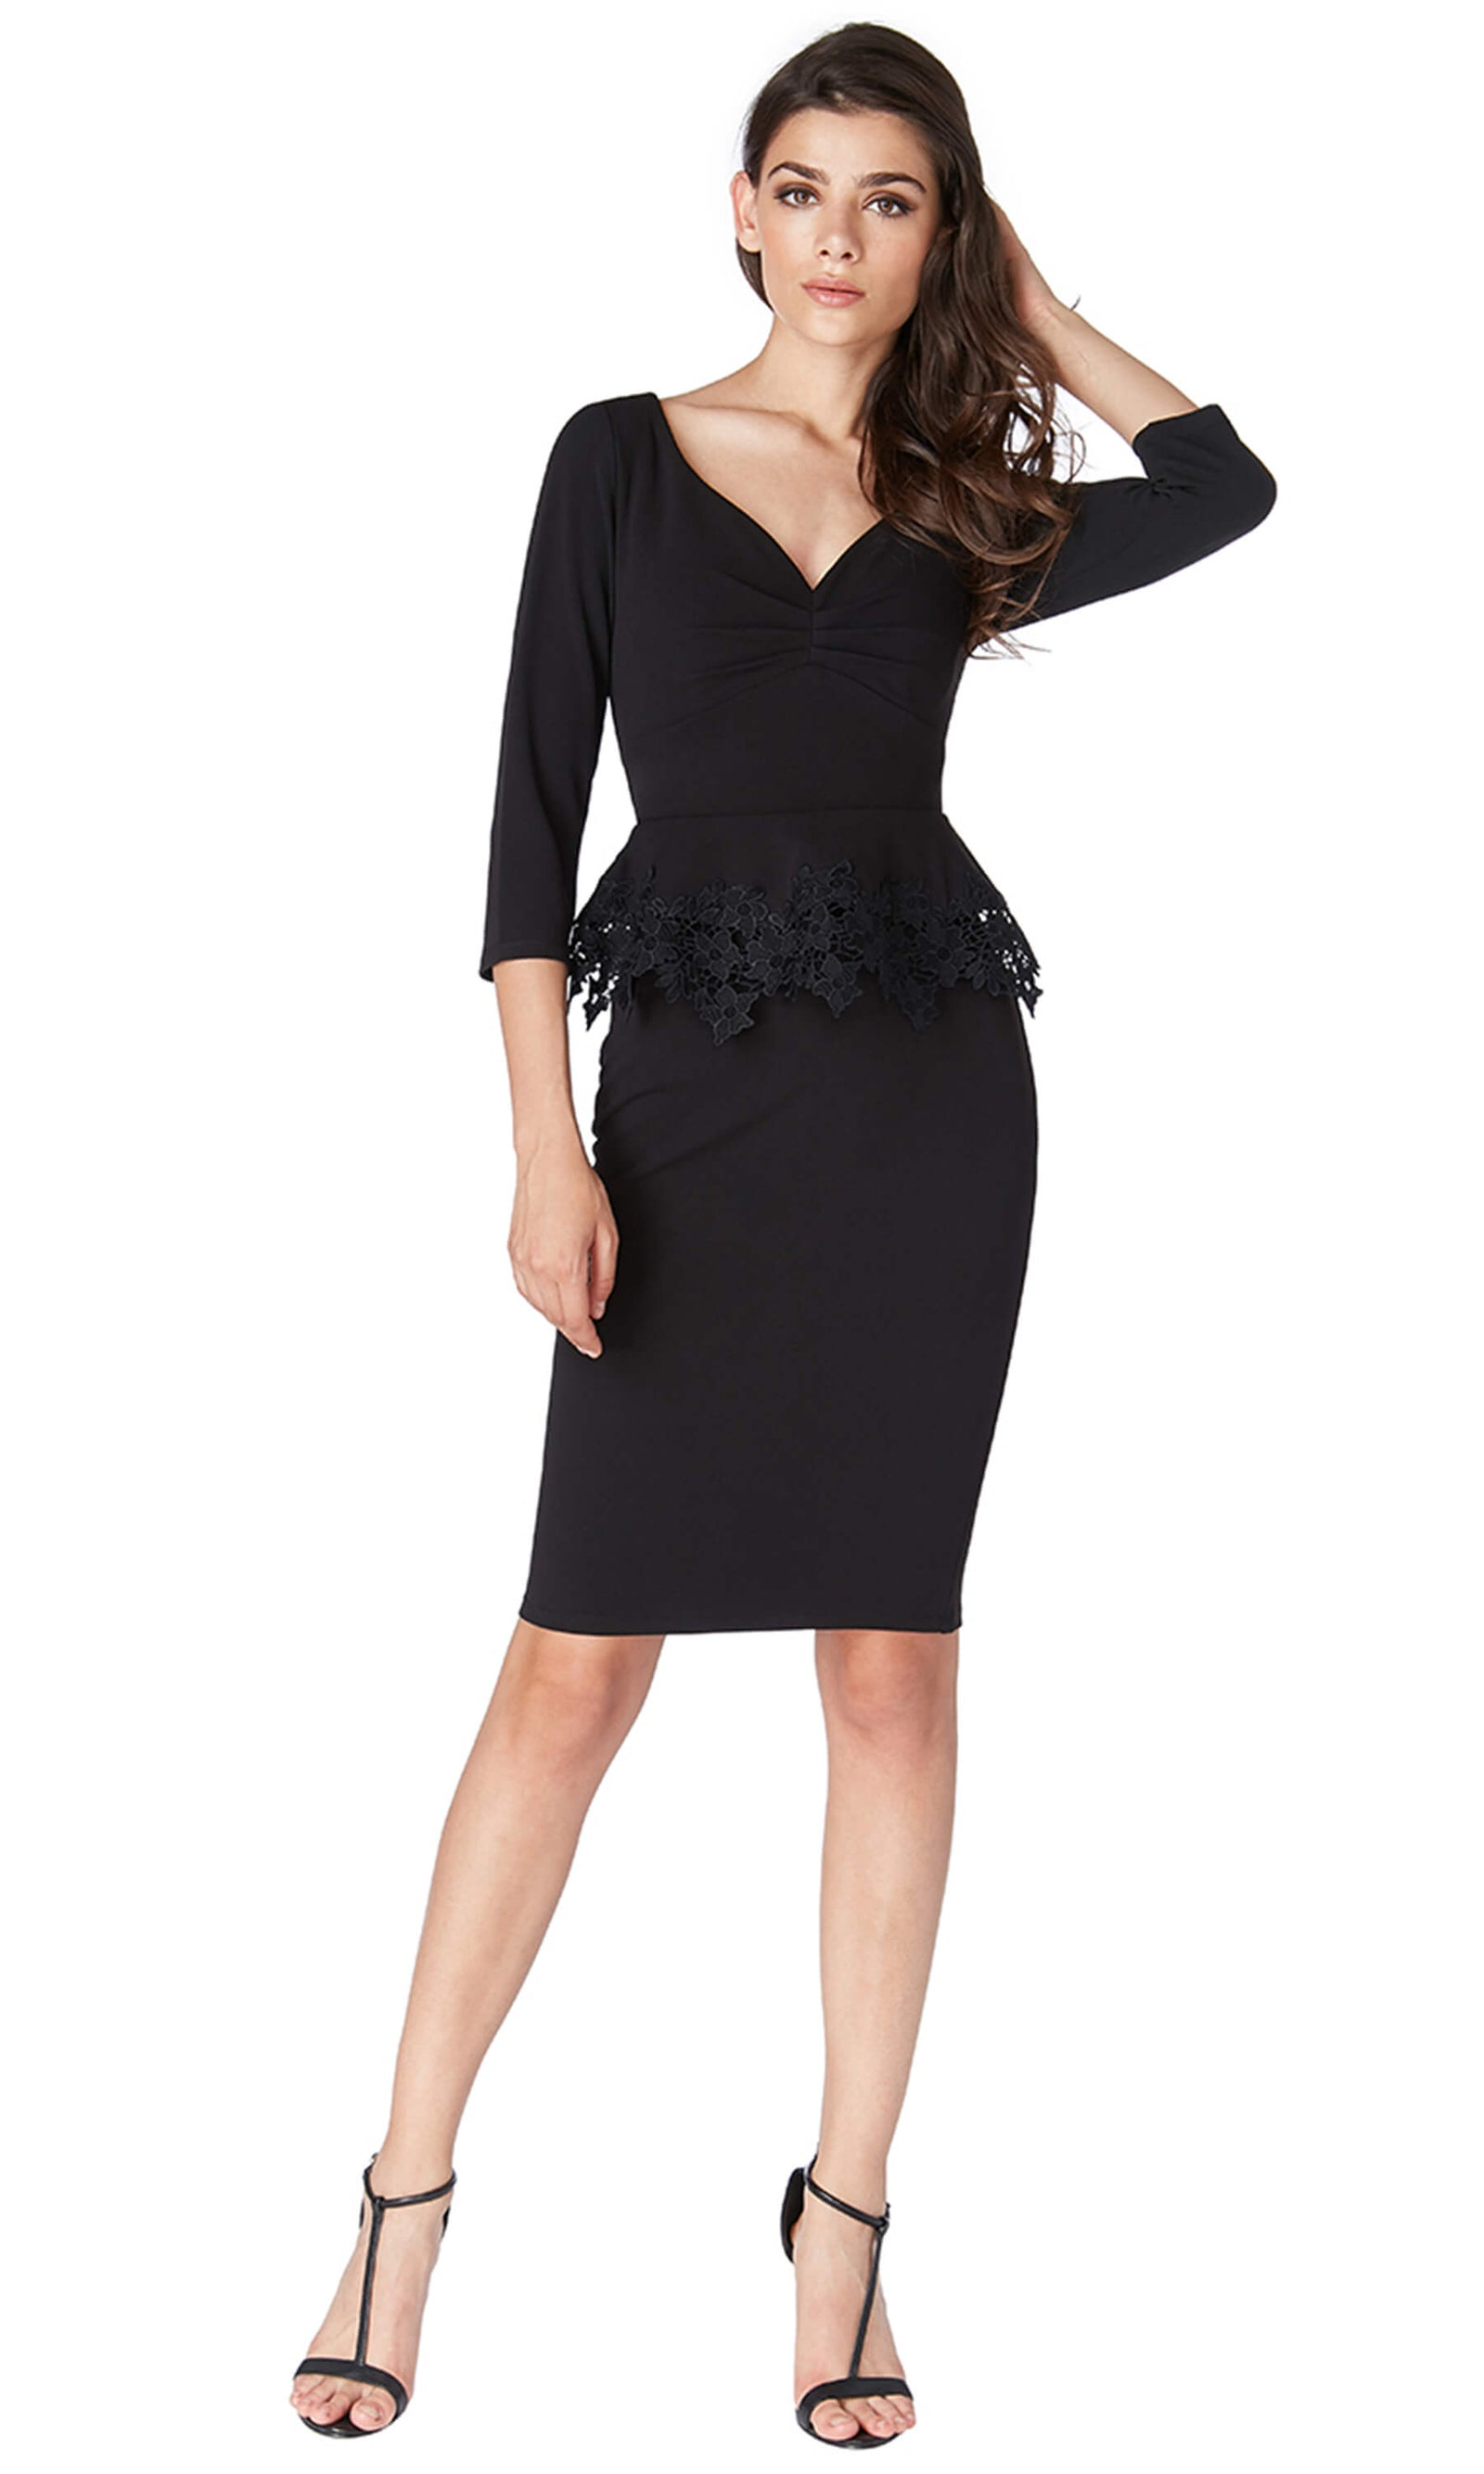 DR1708 Black City Goddess Peplum Cocktail Party Dress - Fab Frocks